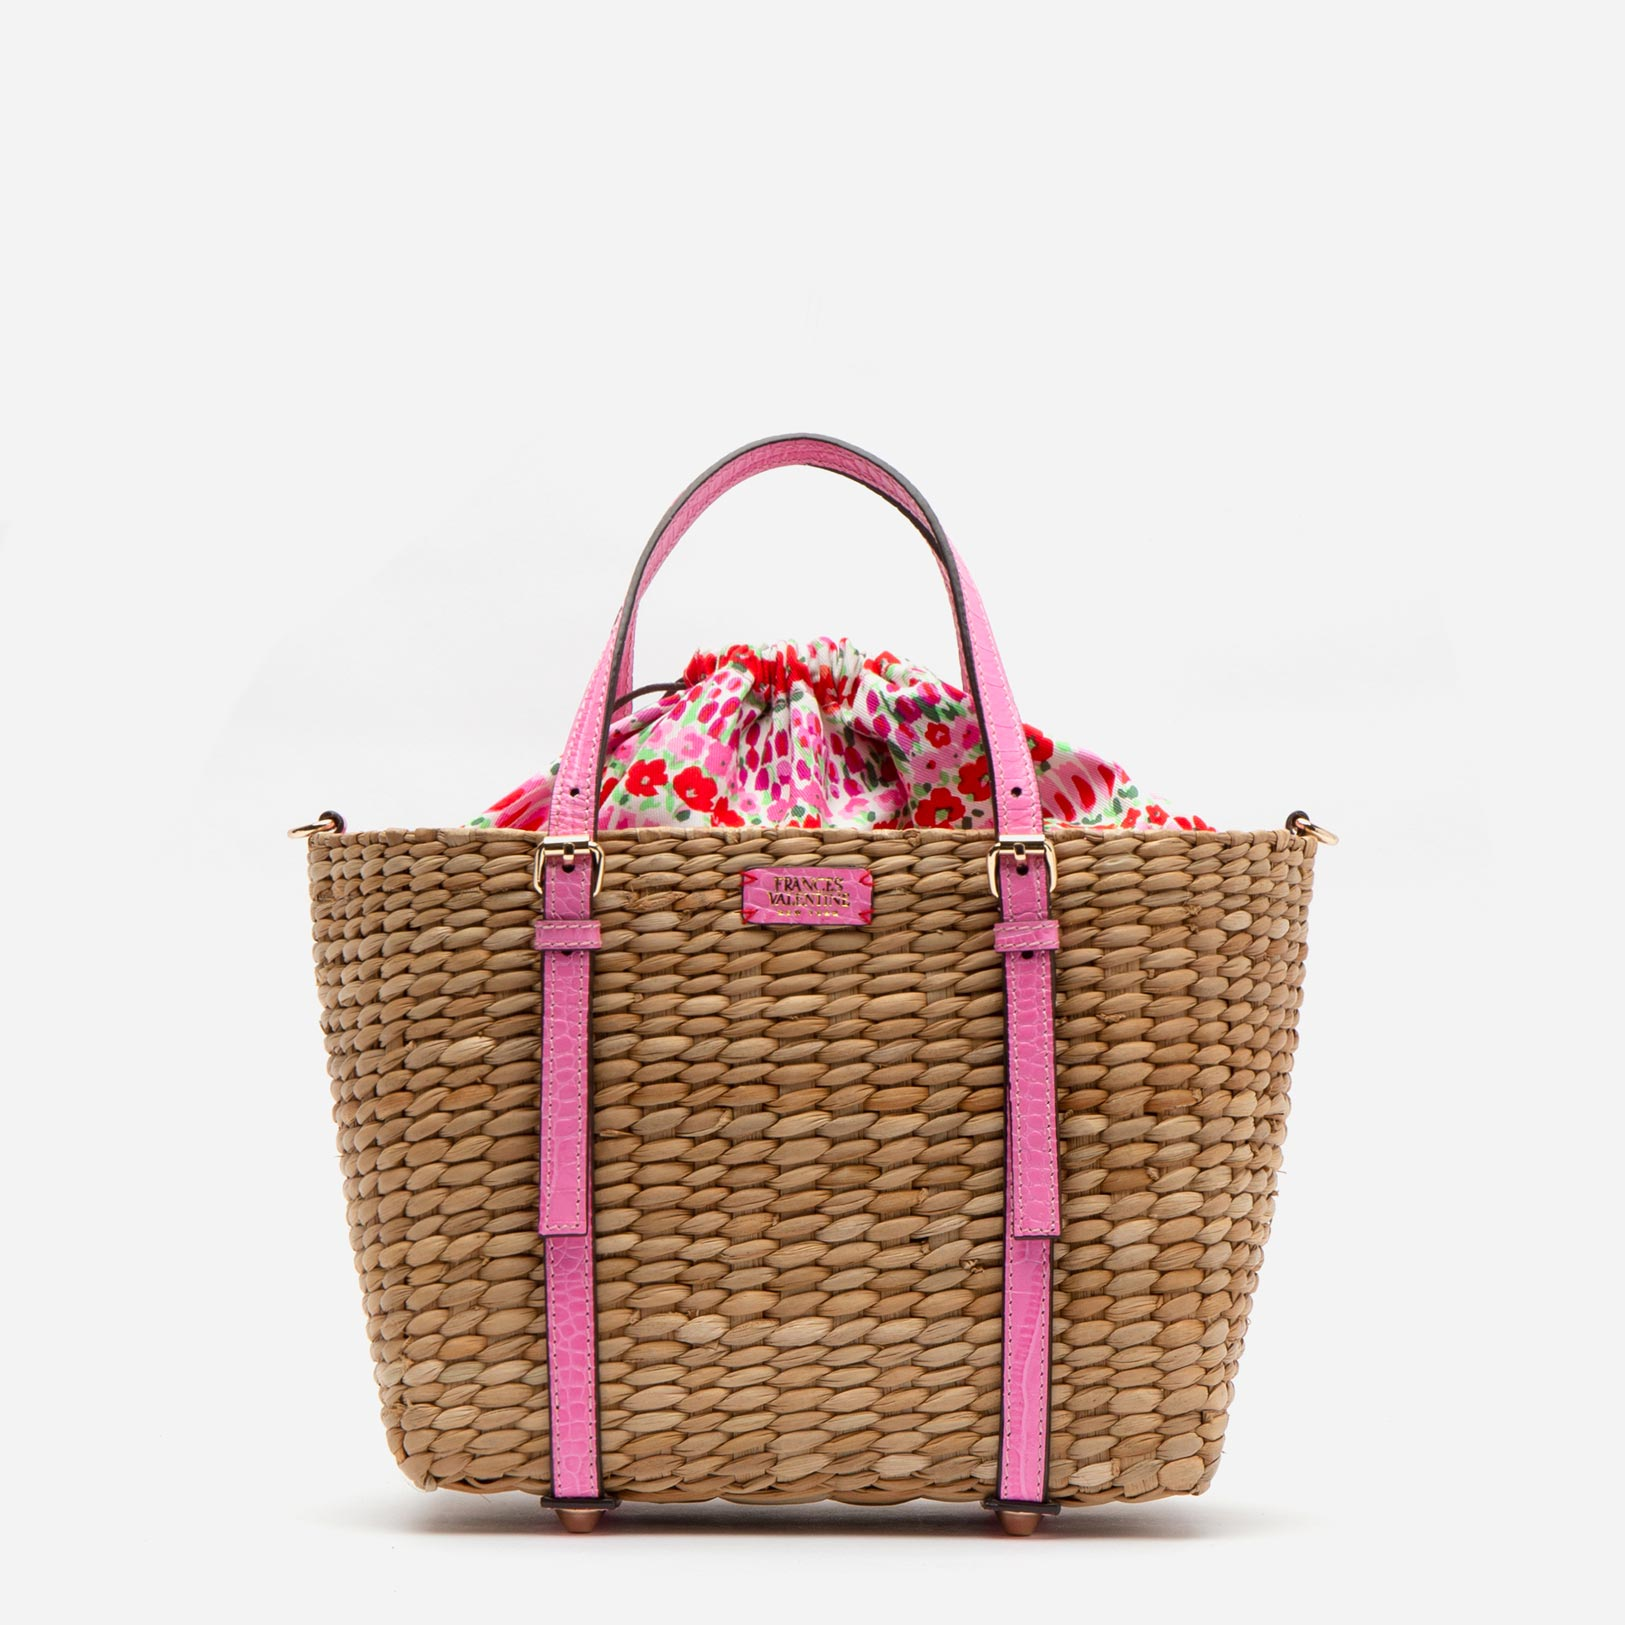 Small Woven Basket Tote Croc Embossed Leather Pink